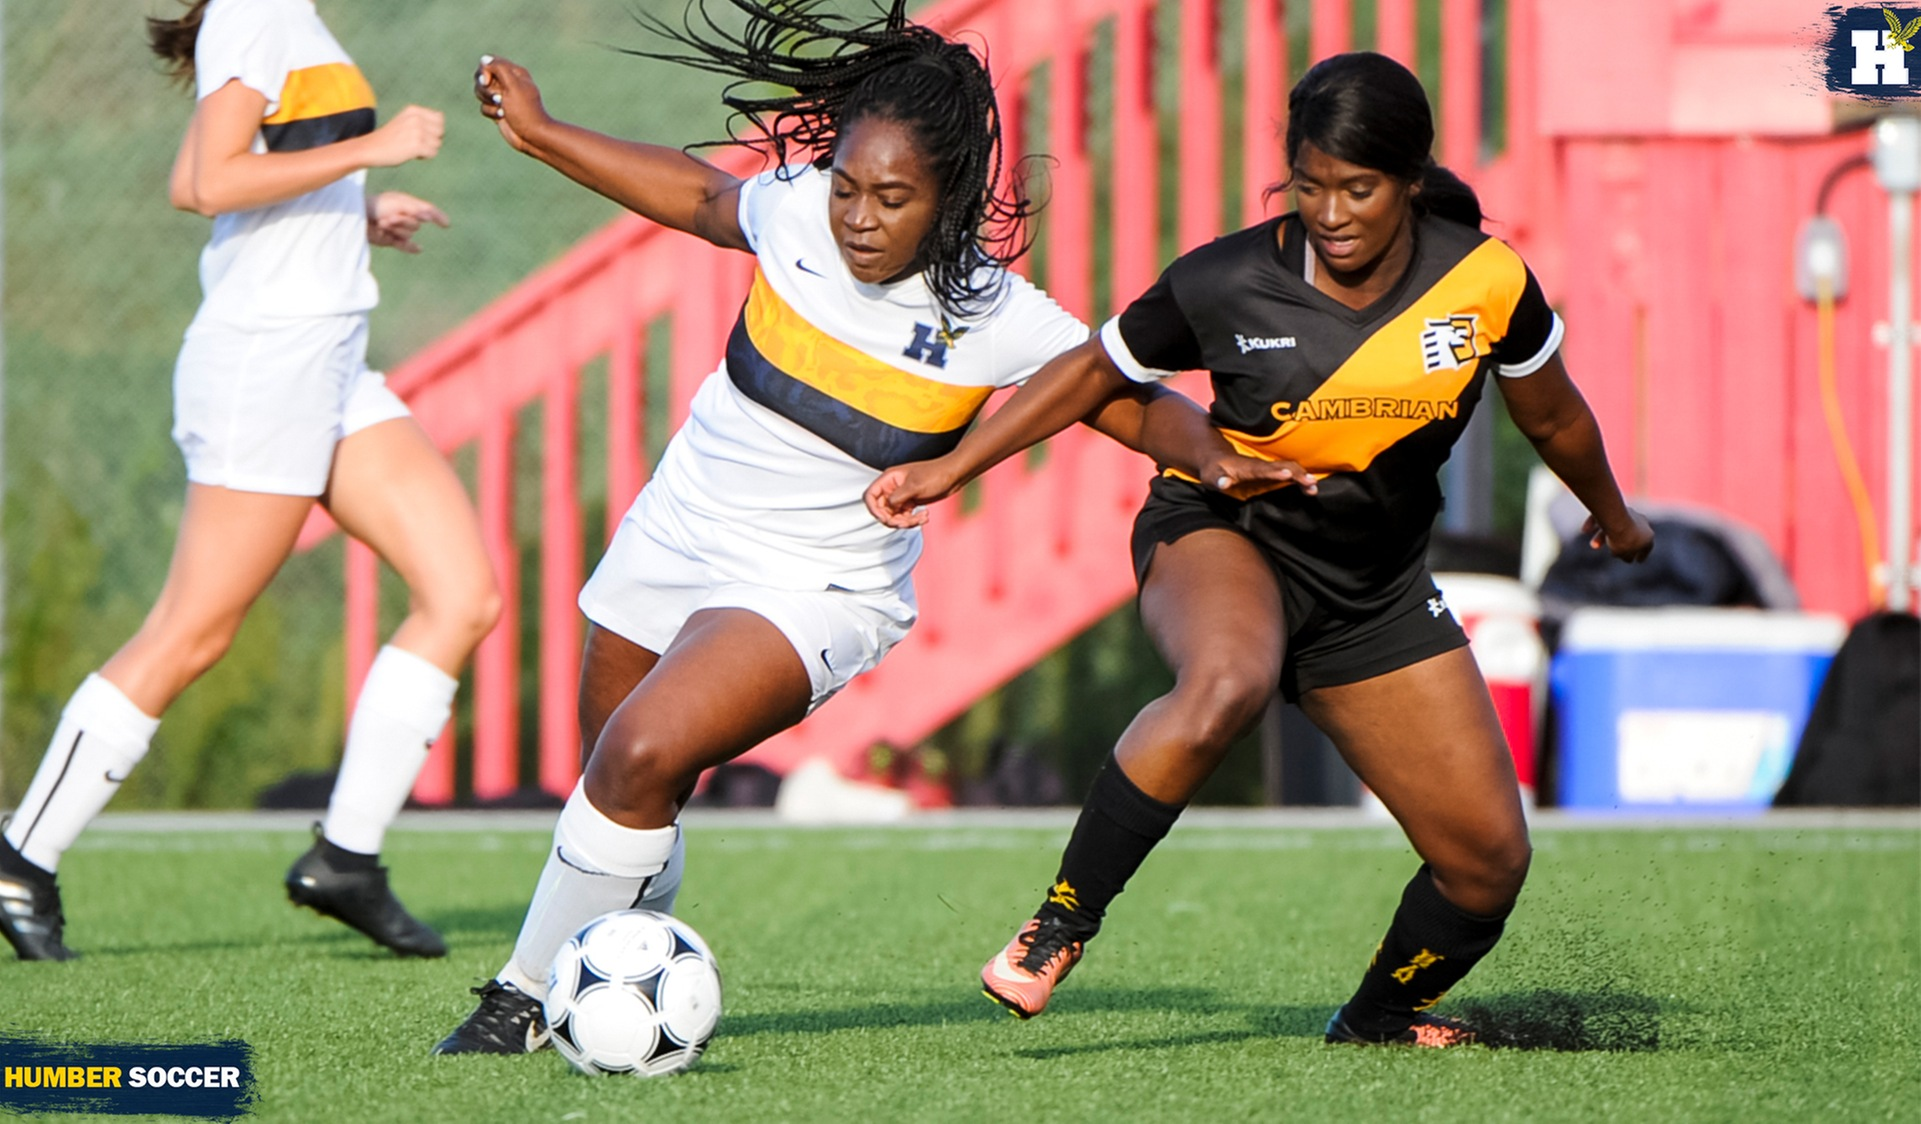 BIG SECOND HALF LIFTS No. 7 WOMEN'S SOCCER OVER CAMBRIAN, 5-0